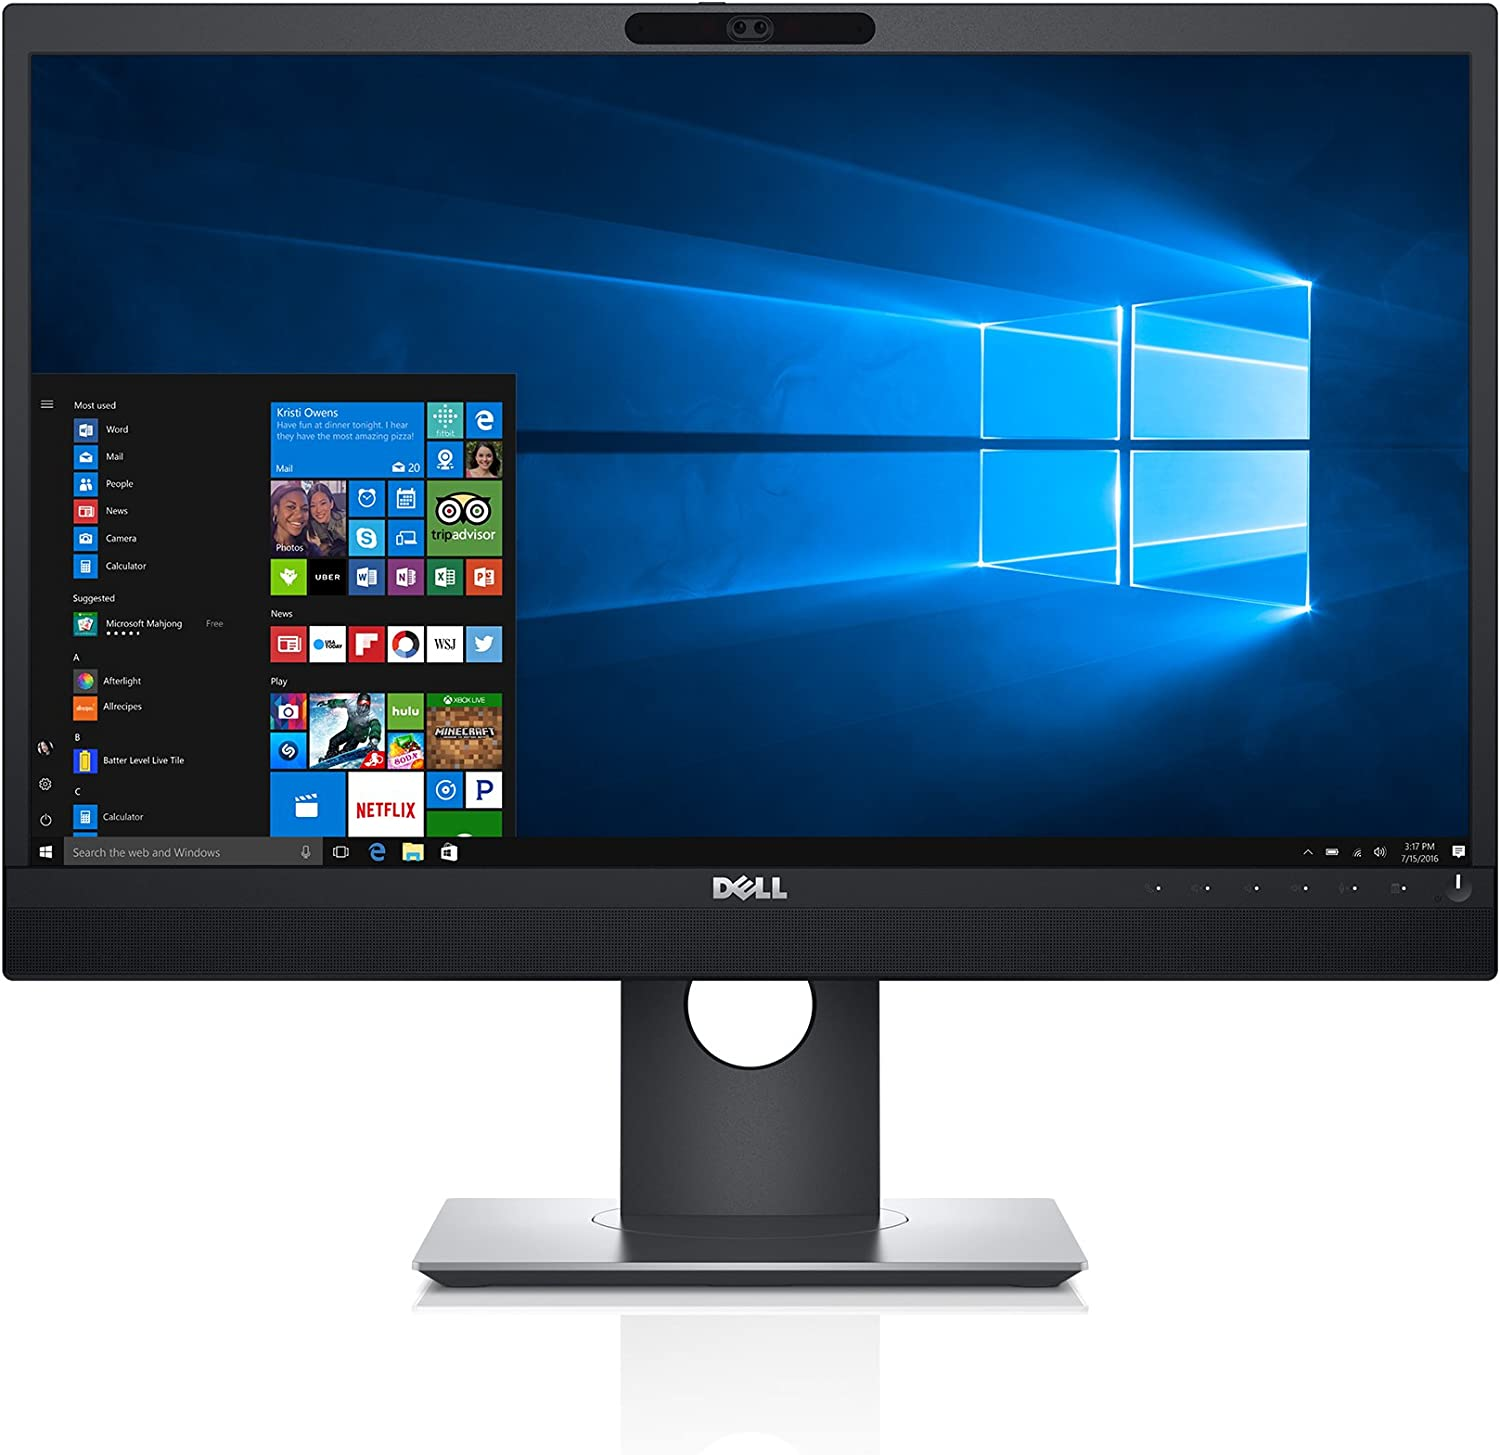 "Dell P2418HZm 24"" Monitor for Video Conferencing - P Series,black/silver"